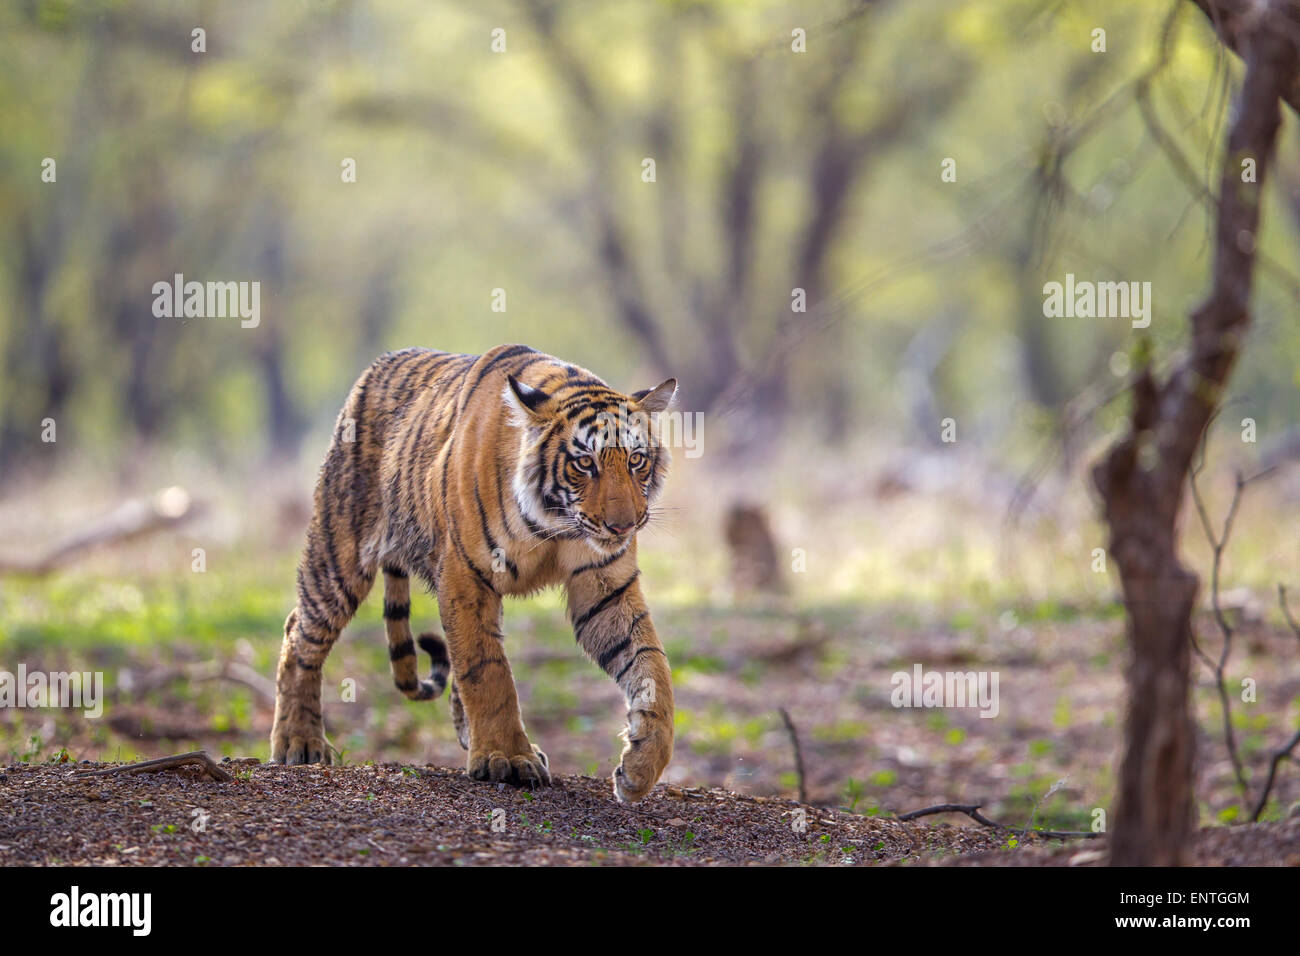 A 13 month old Tiger walking near rajbaug area at Ranthambhore Forest. [Panthera Tigris] - Stock Image